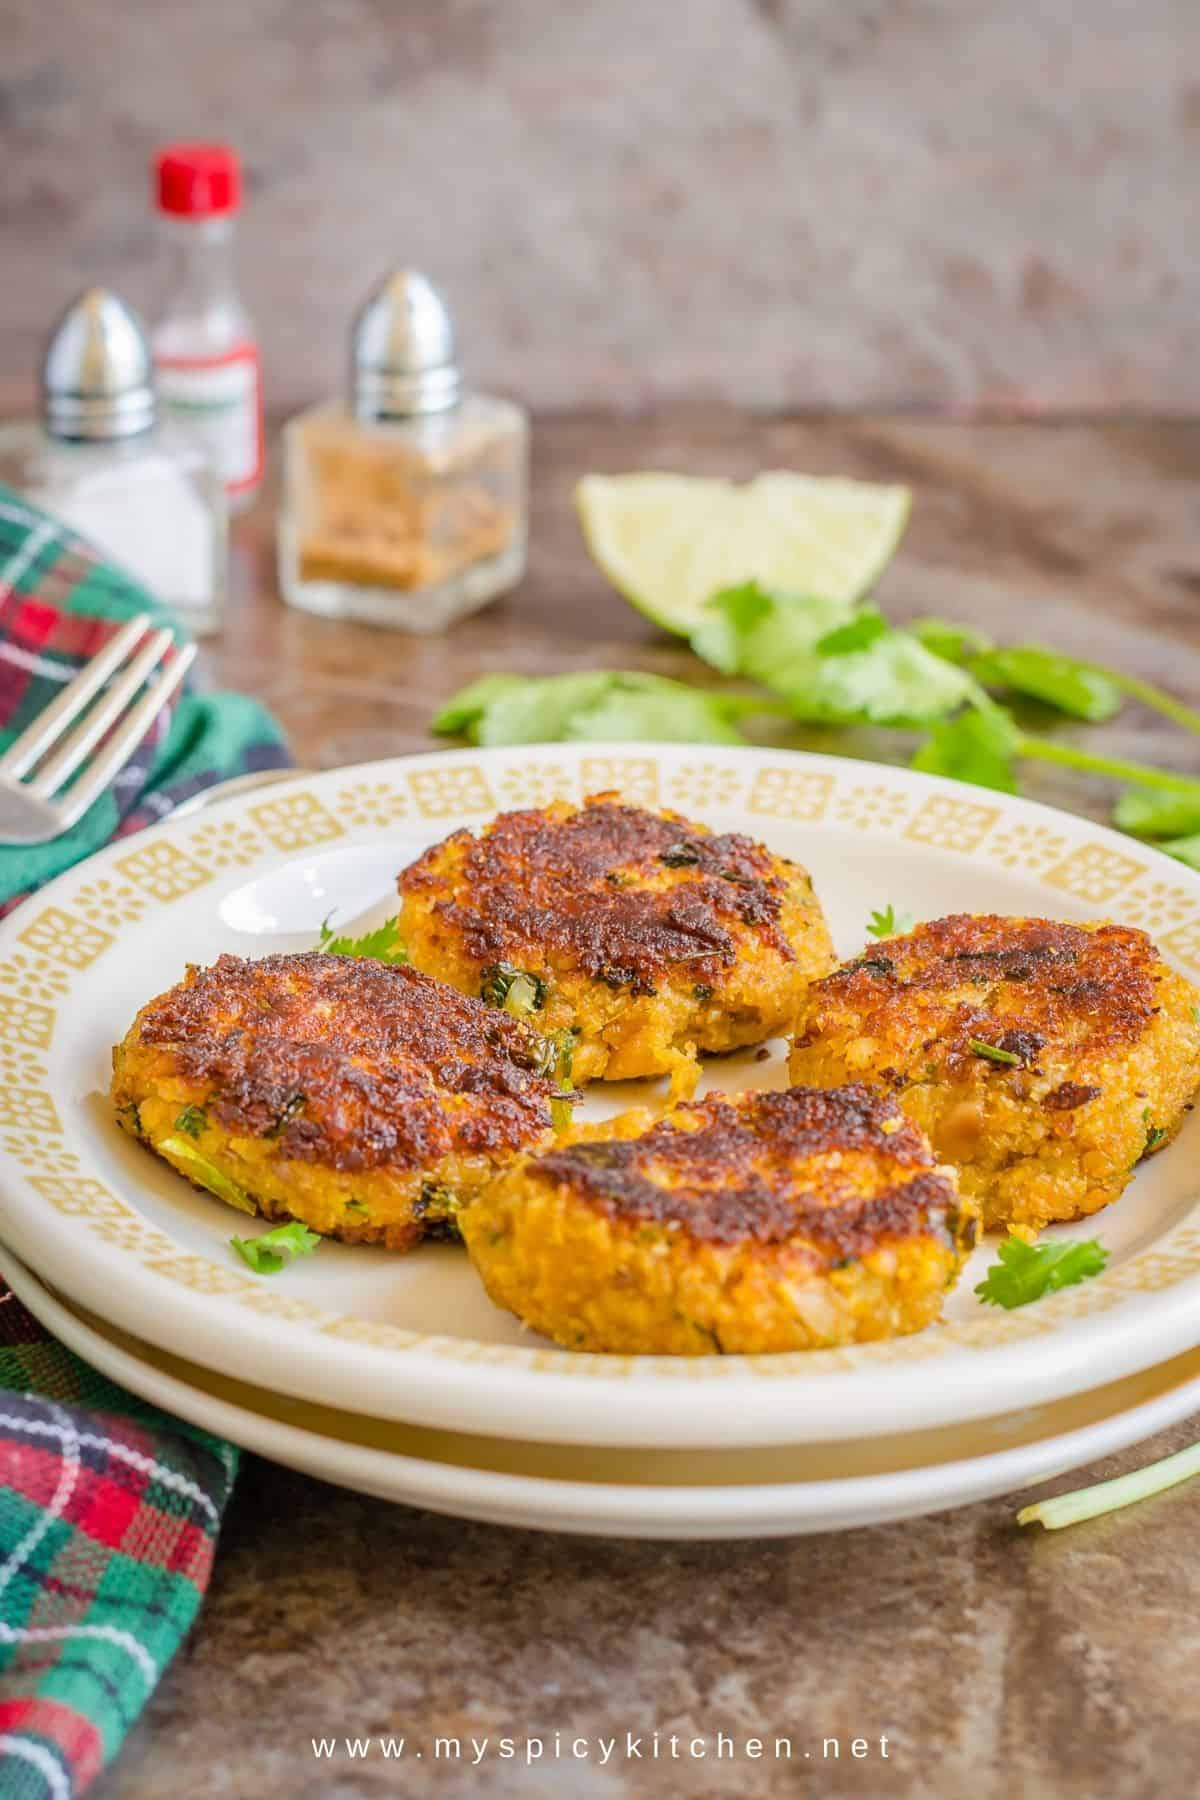 Plate of tilapia cakes.